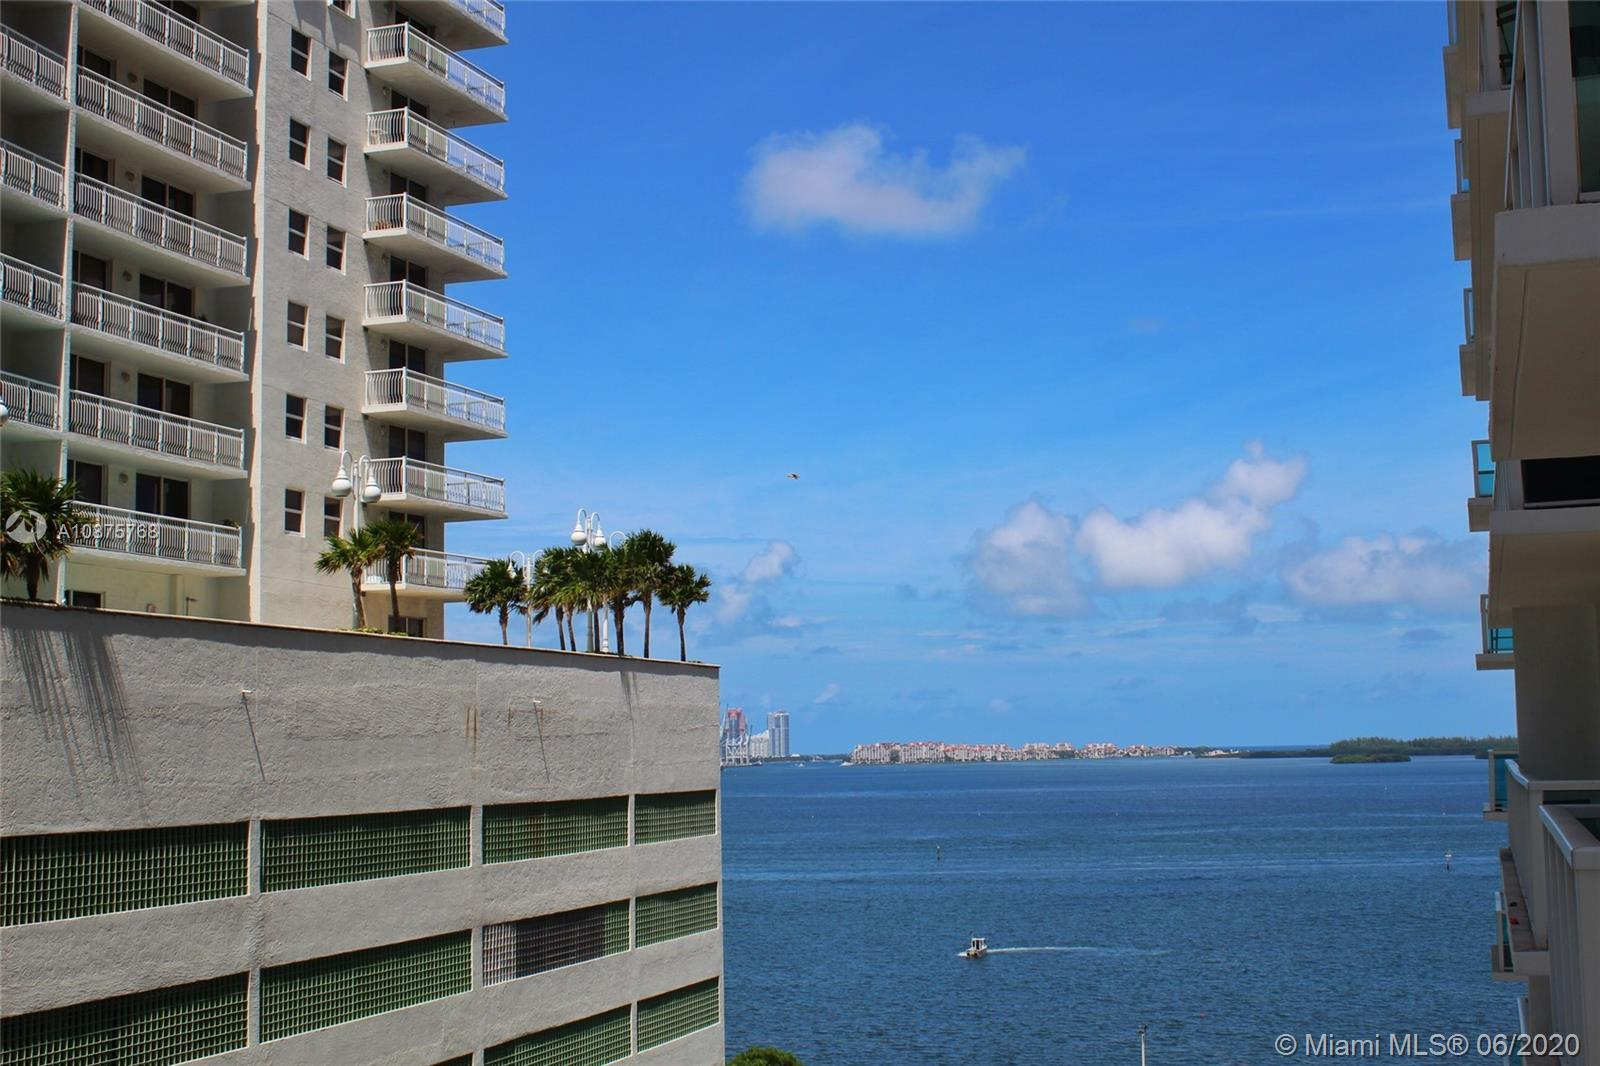 Turn-key CORNER UNIT on the 10th floor, with wrap around balcony offering spectacular views of the c